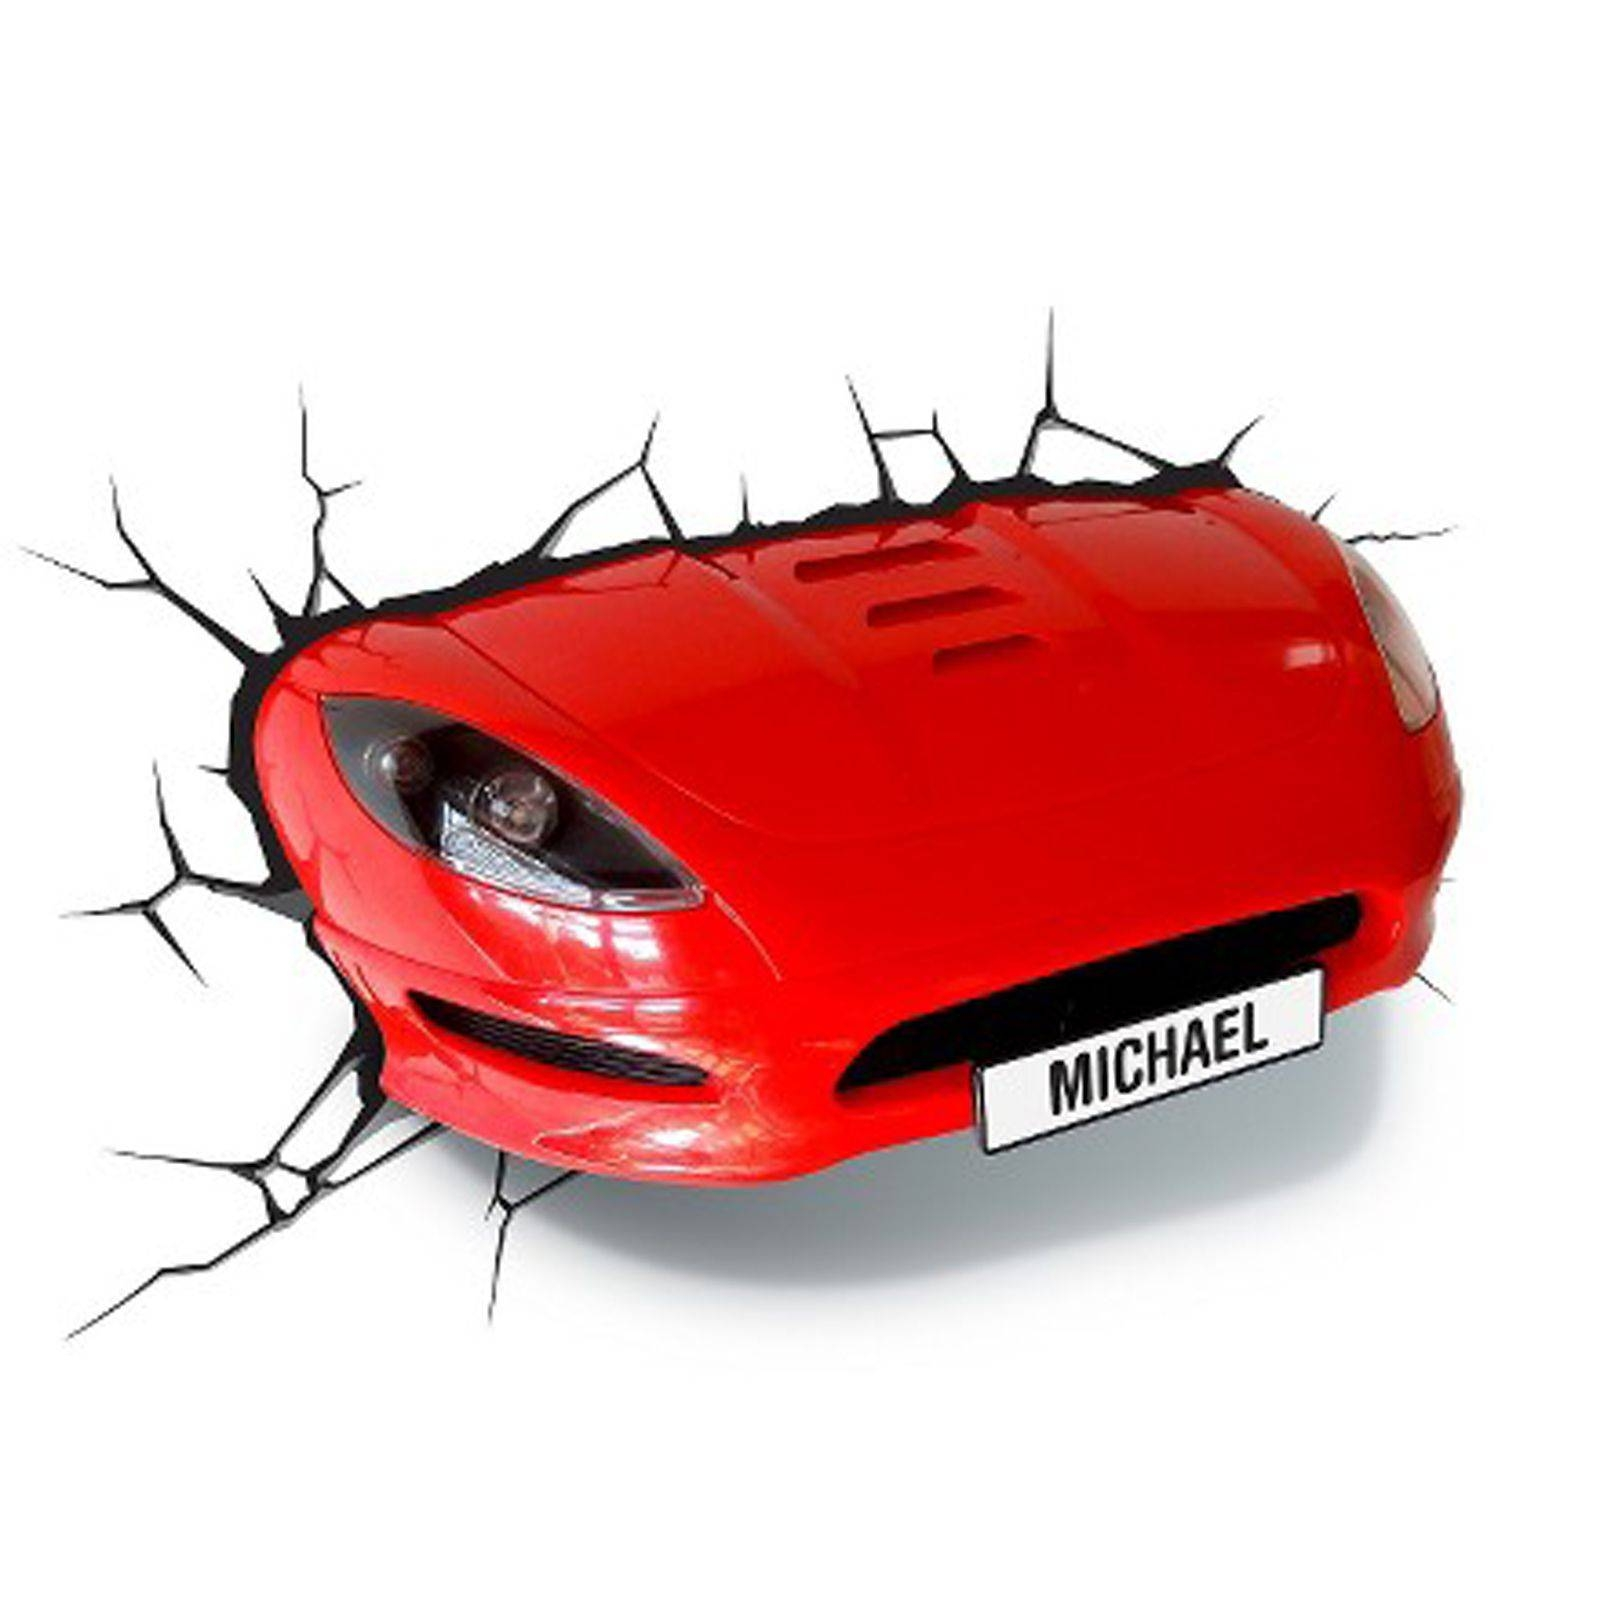 Red Sports Car 3d Effect Wall Light Lamp New Bedroom Decor | Ebay For Best And Newest 3d Effect Wall Art (View 17 of 20)